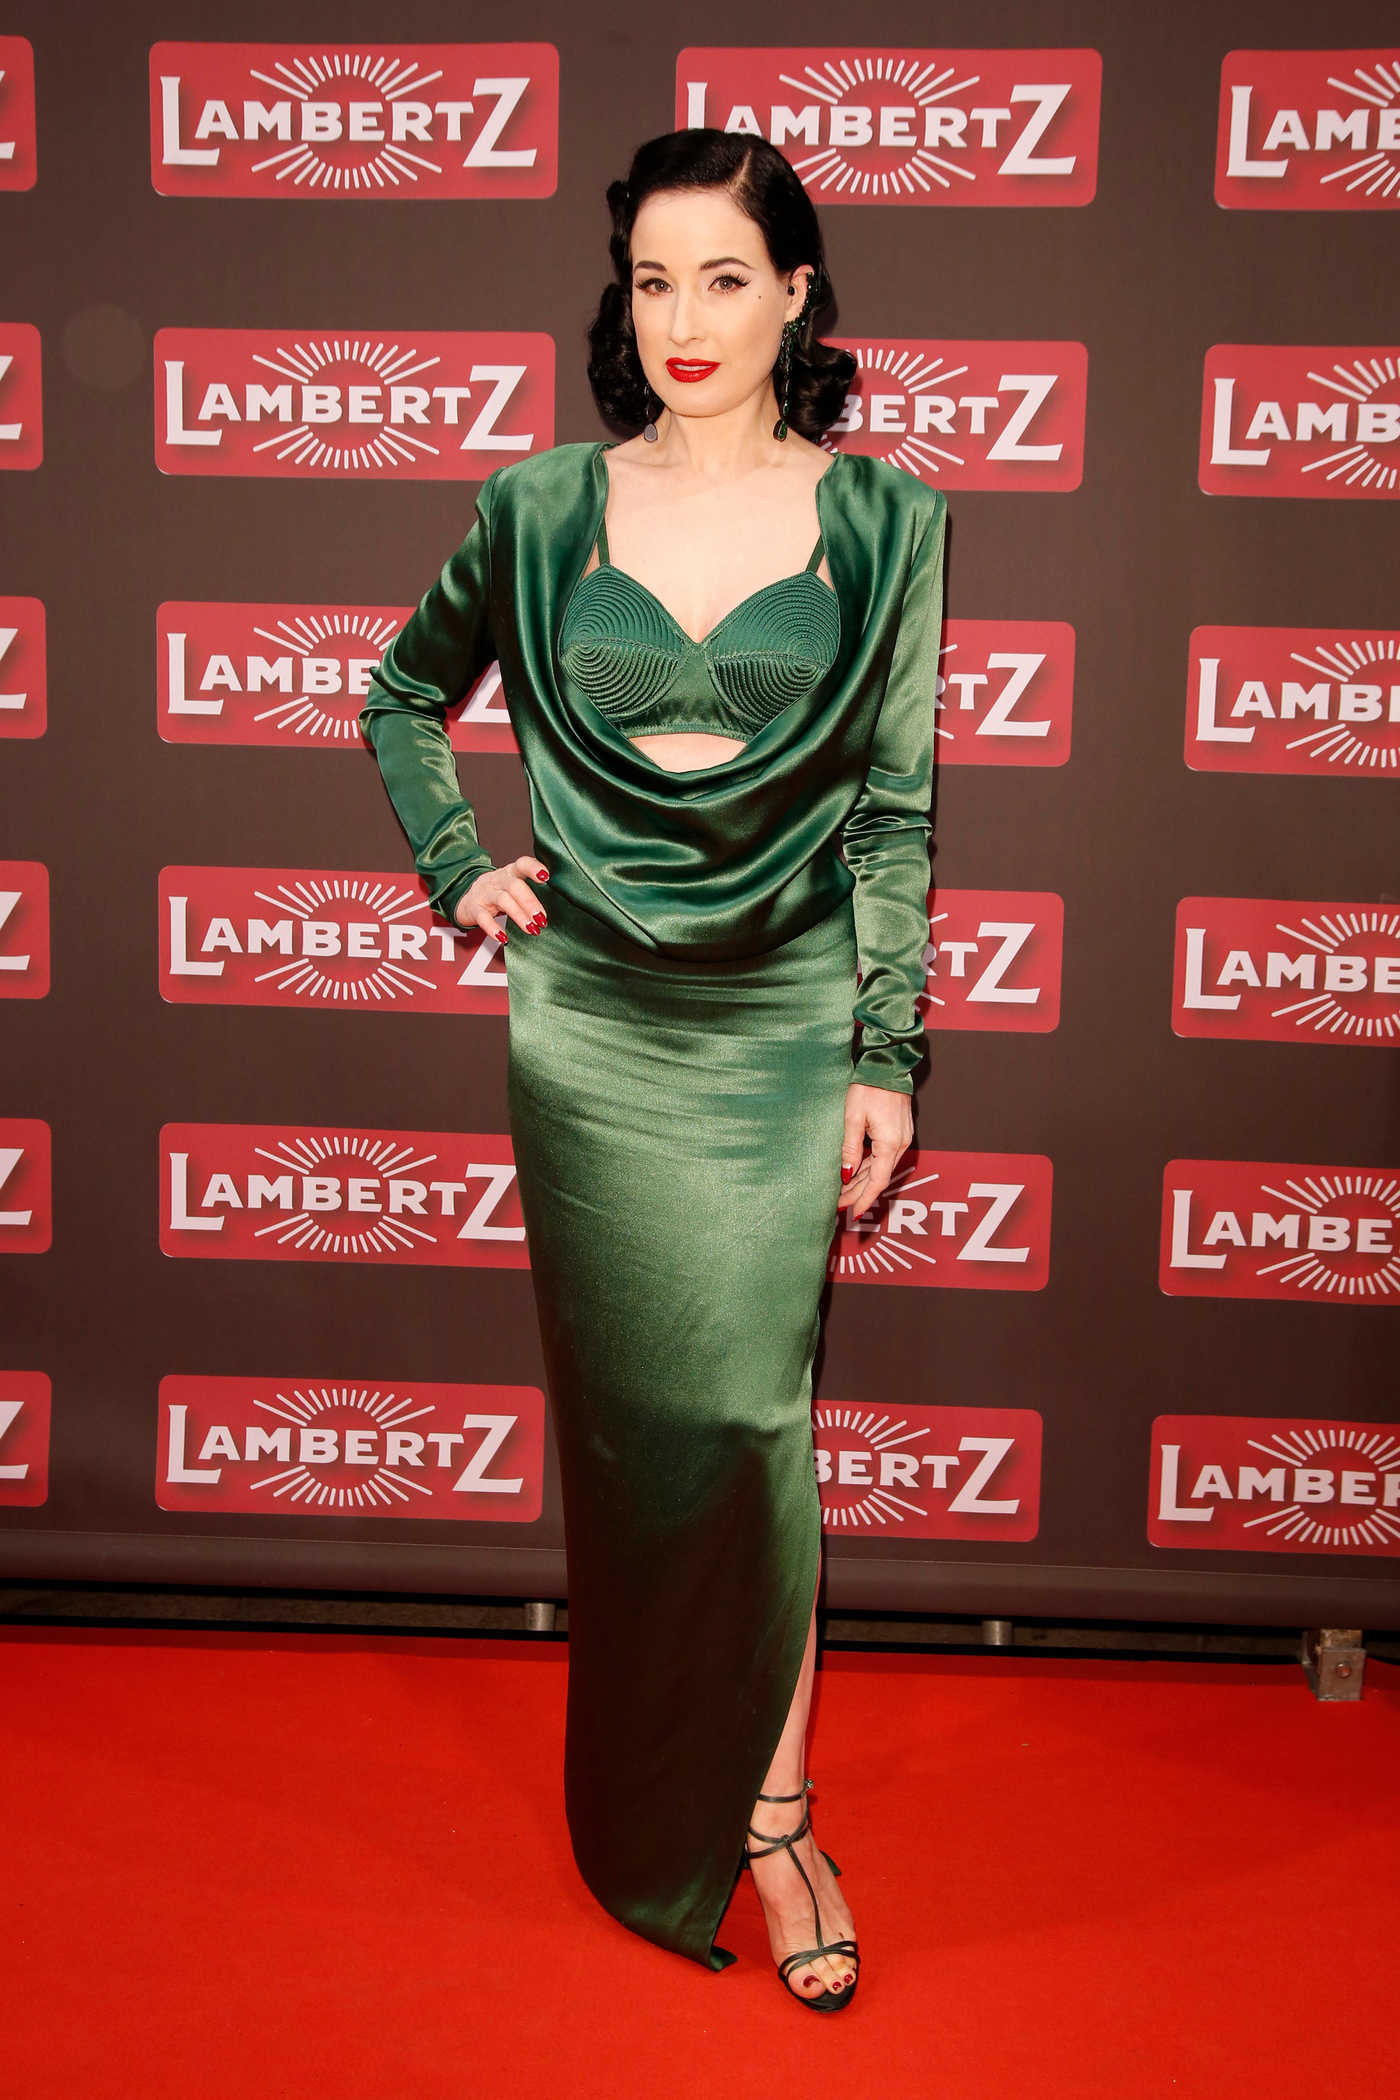 Dita Von Teese at the Lambertz Monday Night in Cologne 01/29/2018